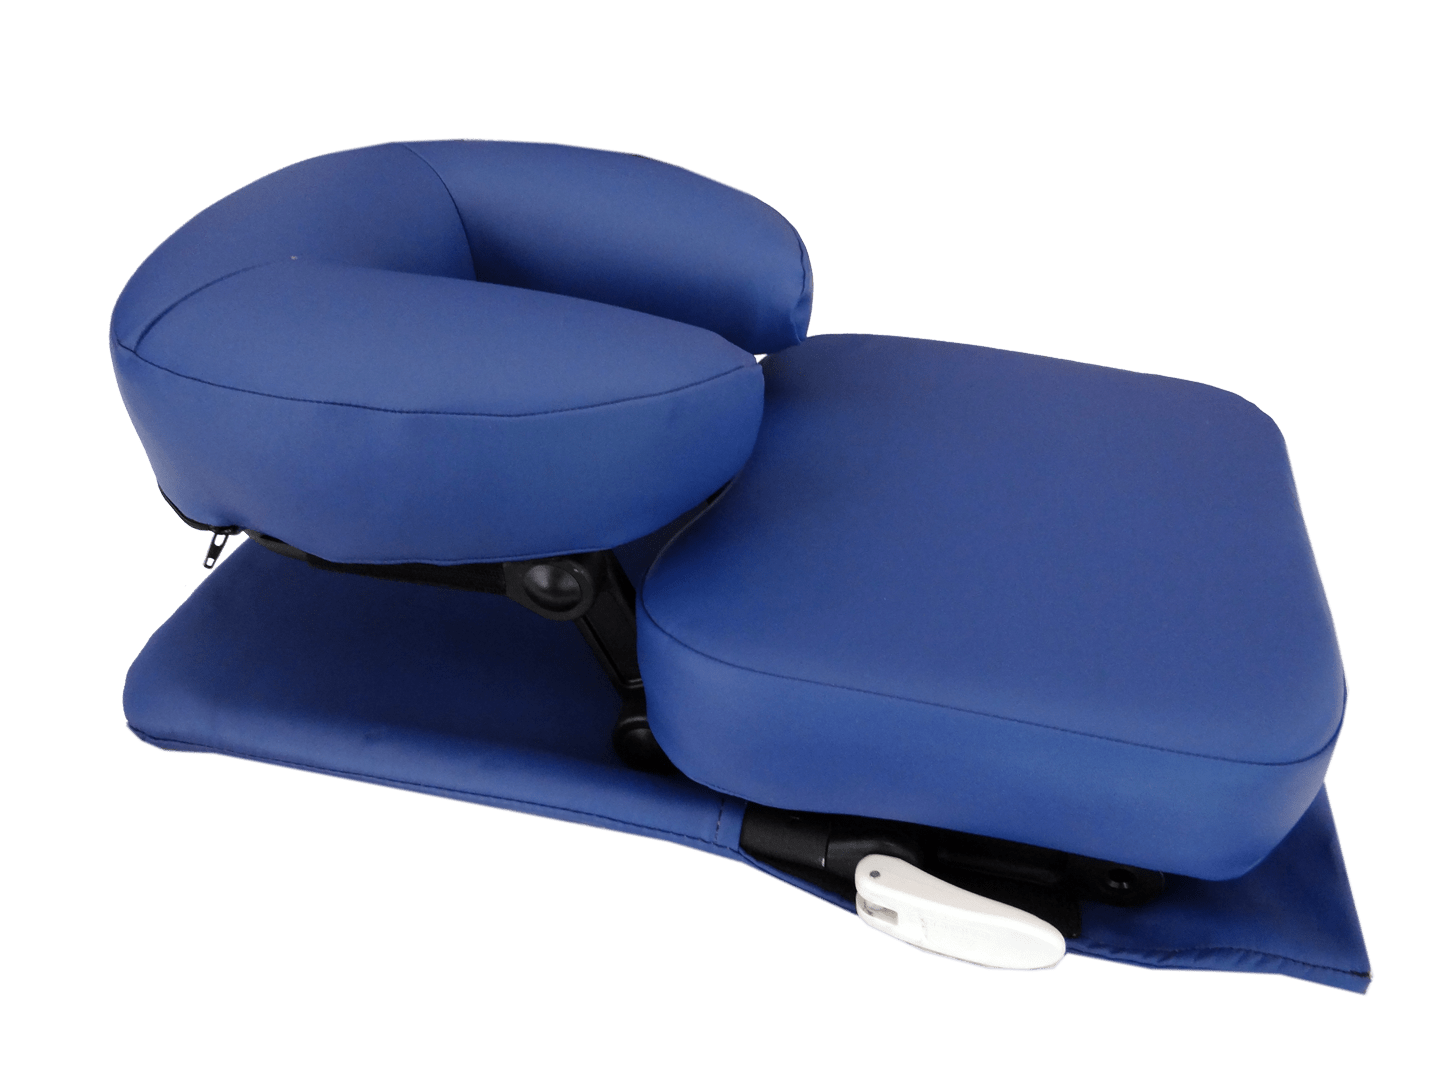 best chair post back surgery emerald green covers vitrectomy equipment chairs sleep